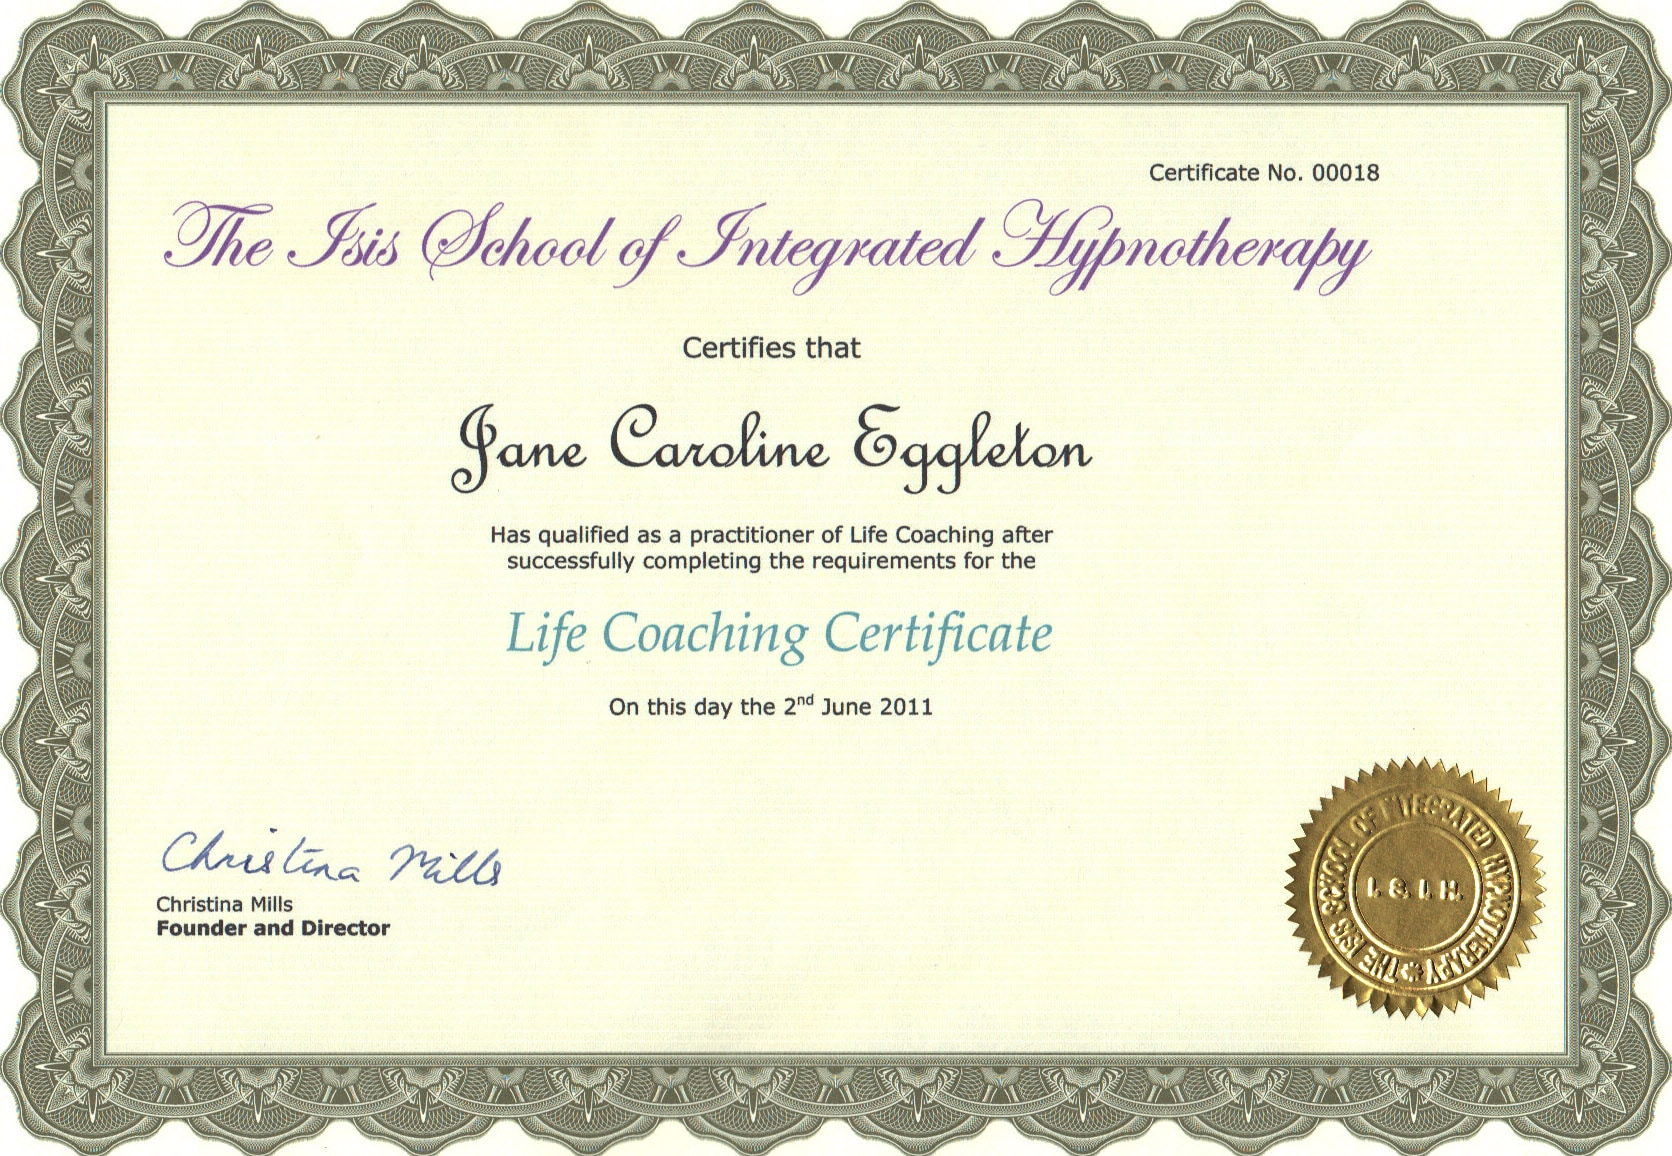 Life Coaching Certificate Wisdom Room London Hypnotherapy